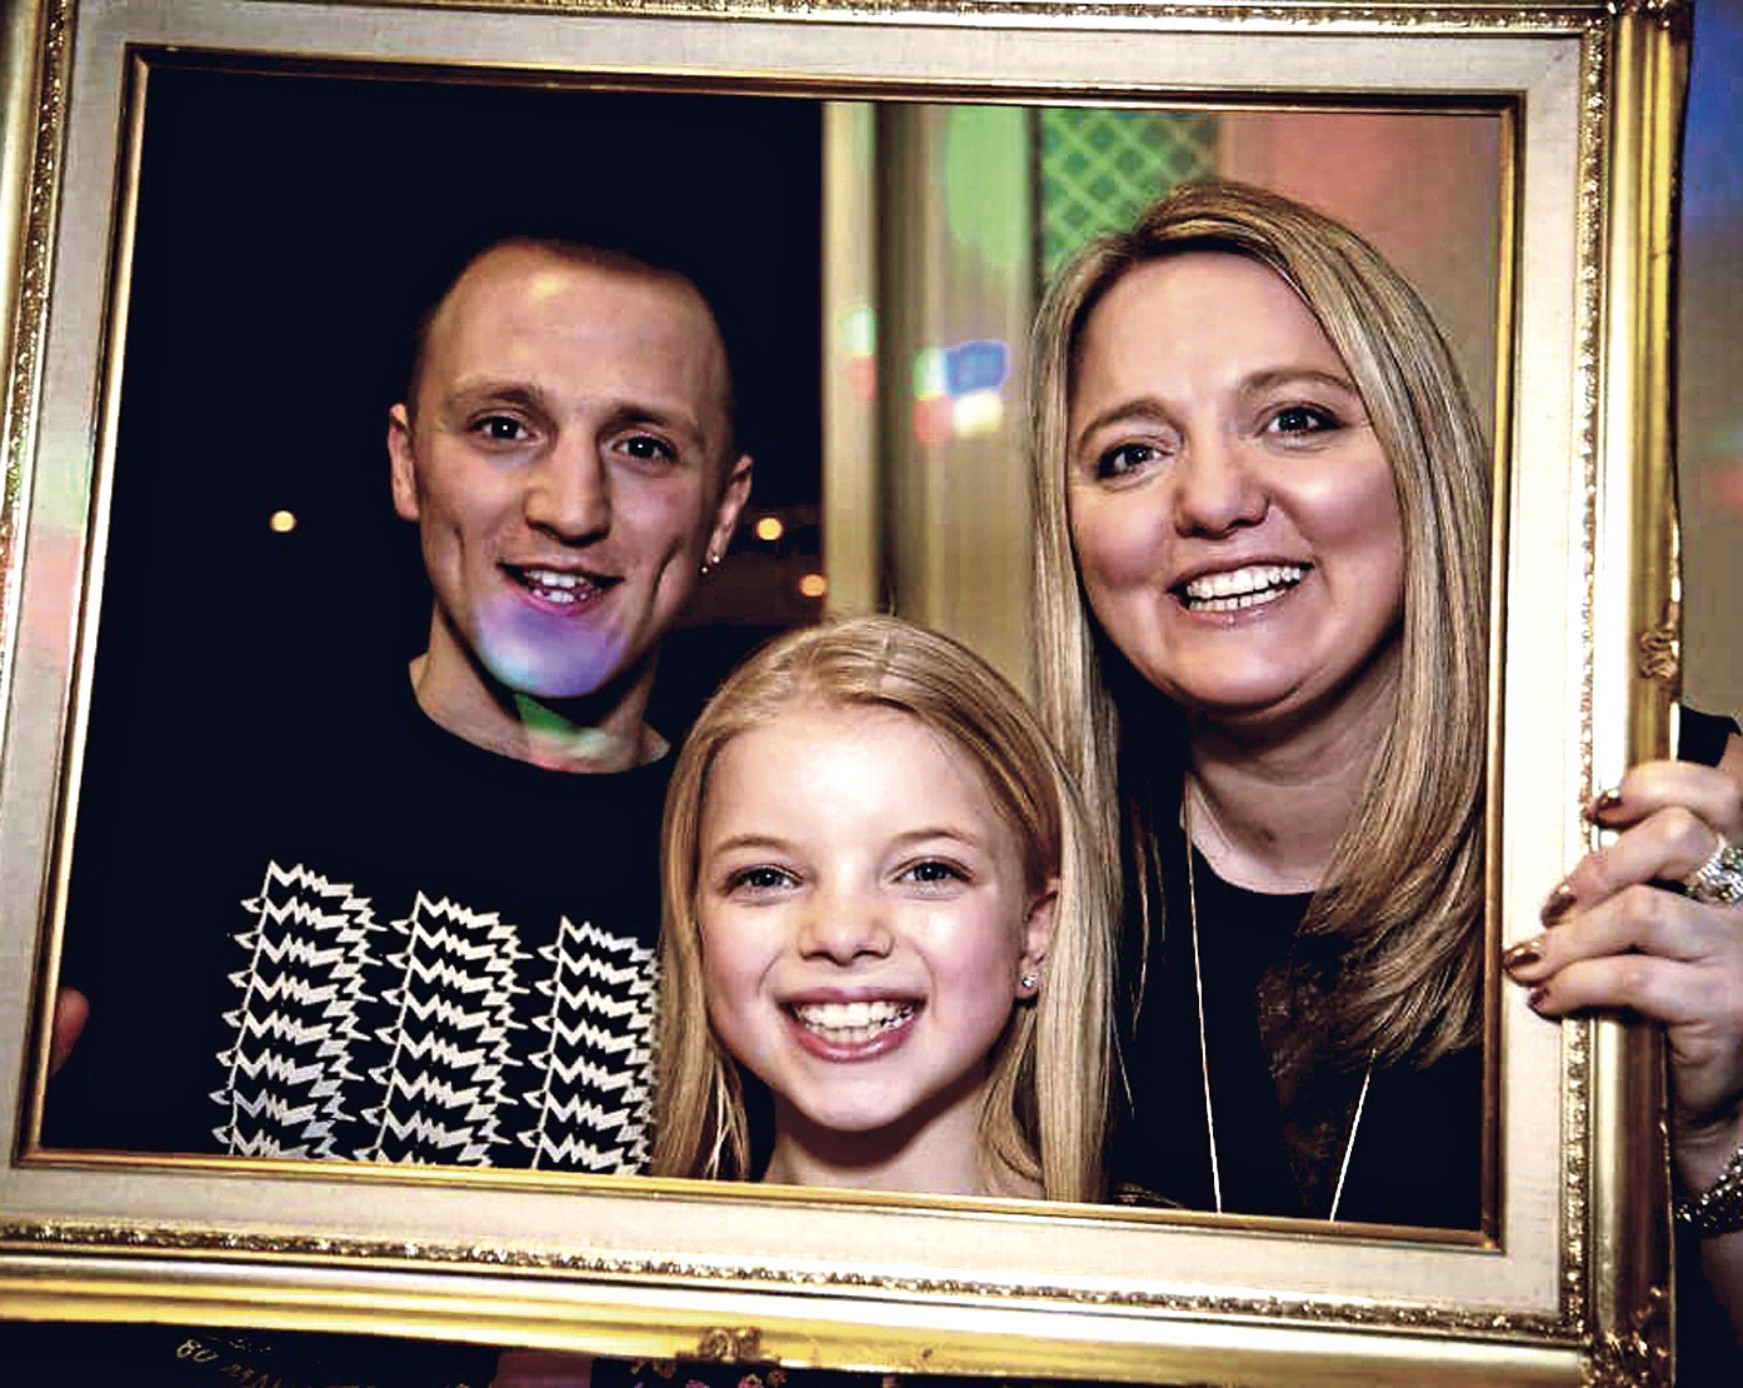 Lily Douglas, who has a severe form of cancer. pictured here with her mother, Jane Douglas and her brother, Leon.